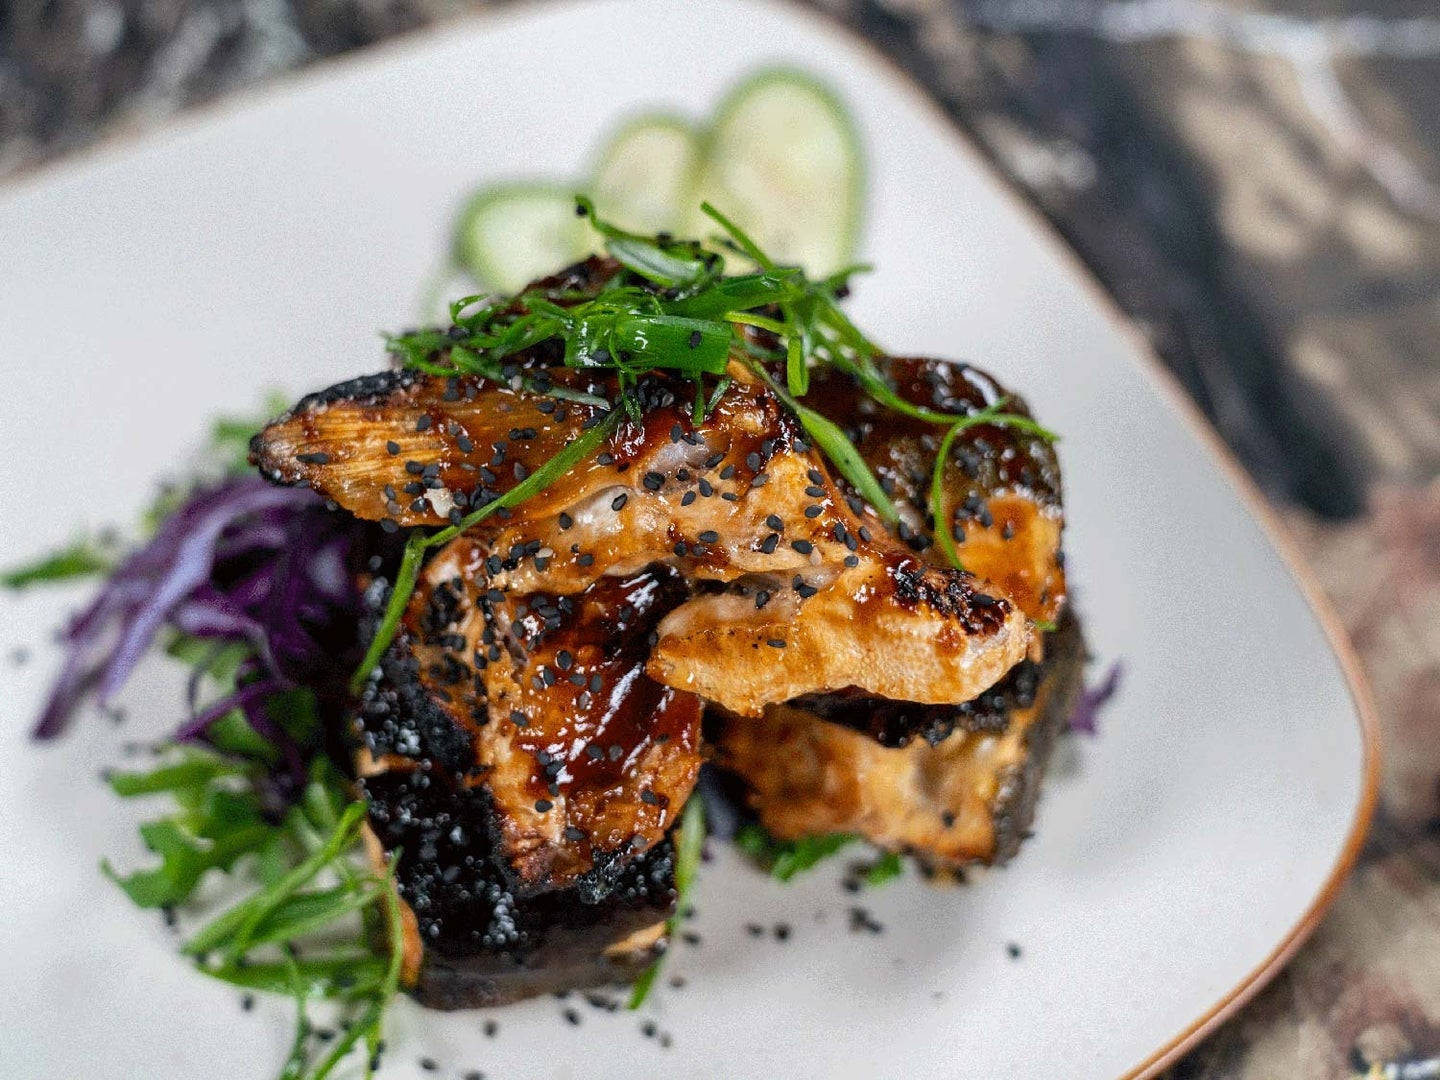 Marinated and grilled trout collars on a bed of greens.